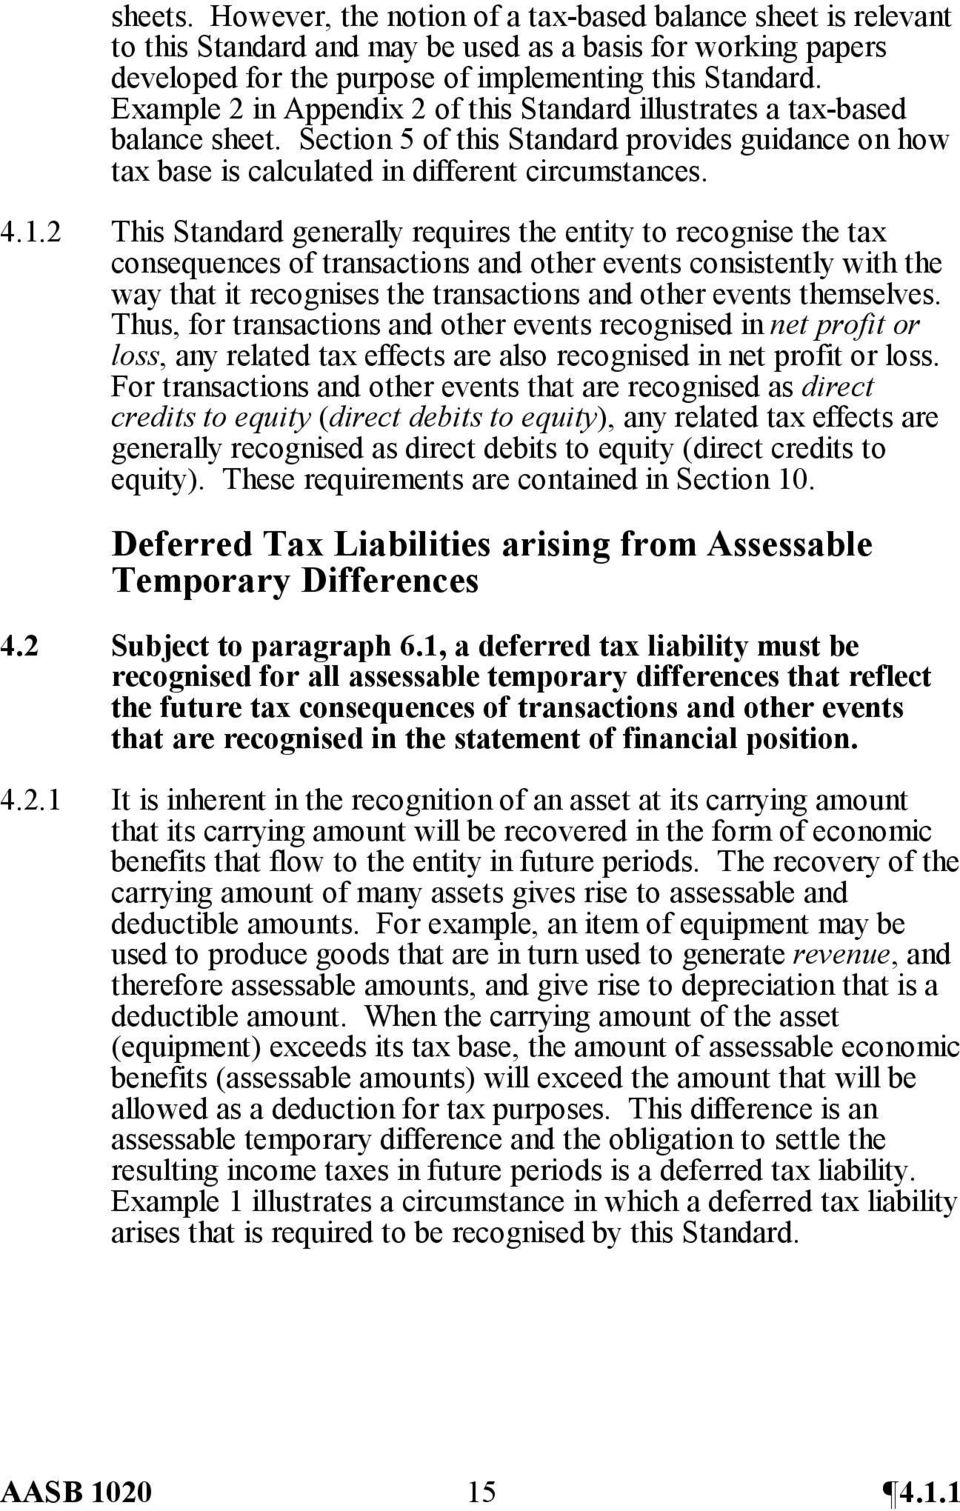 2 This Standard generally requires the entity to recognise the tax consequences of transactions and other events consistently with the way that it recognises the transactions and other events